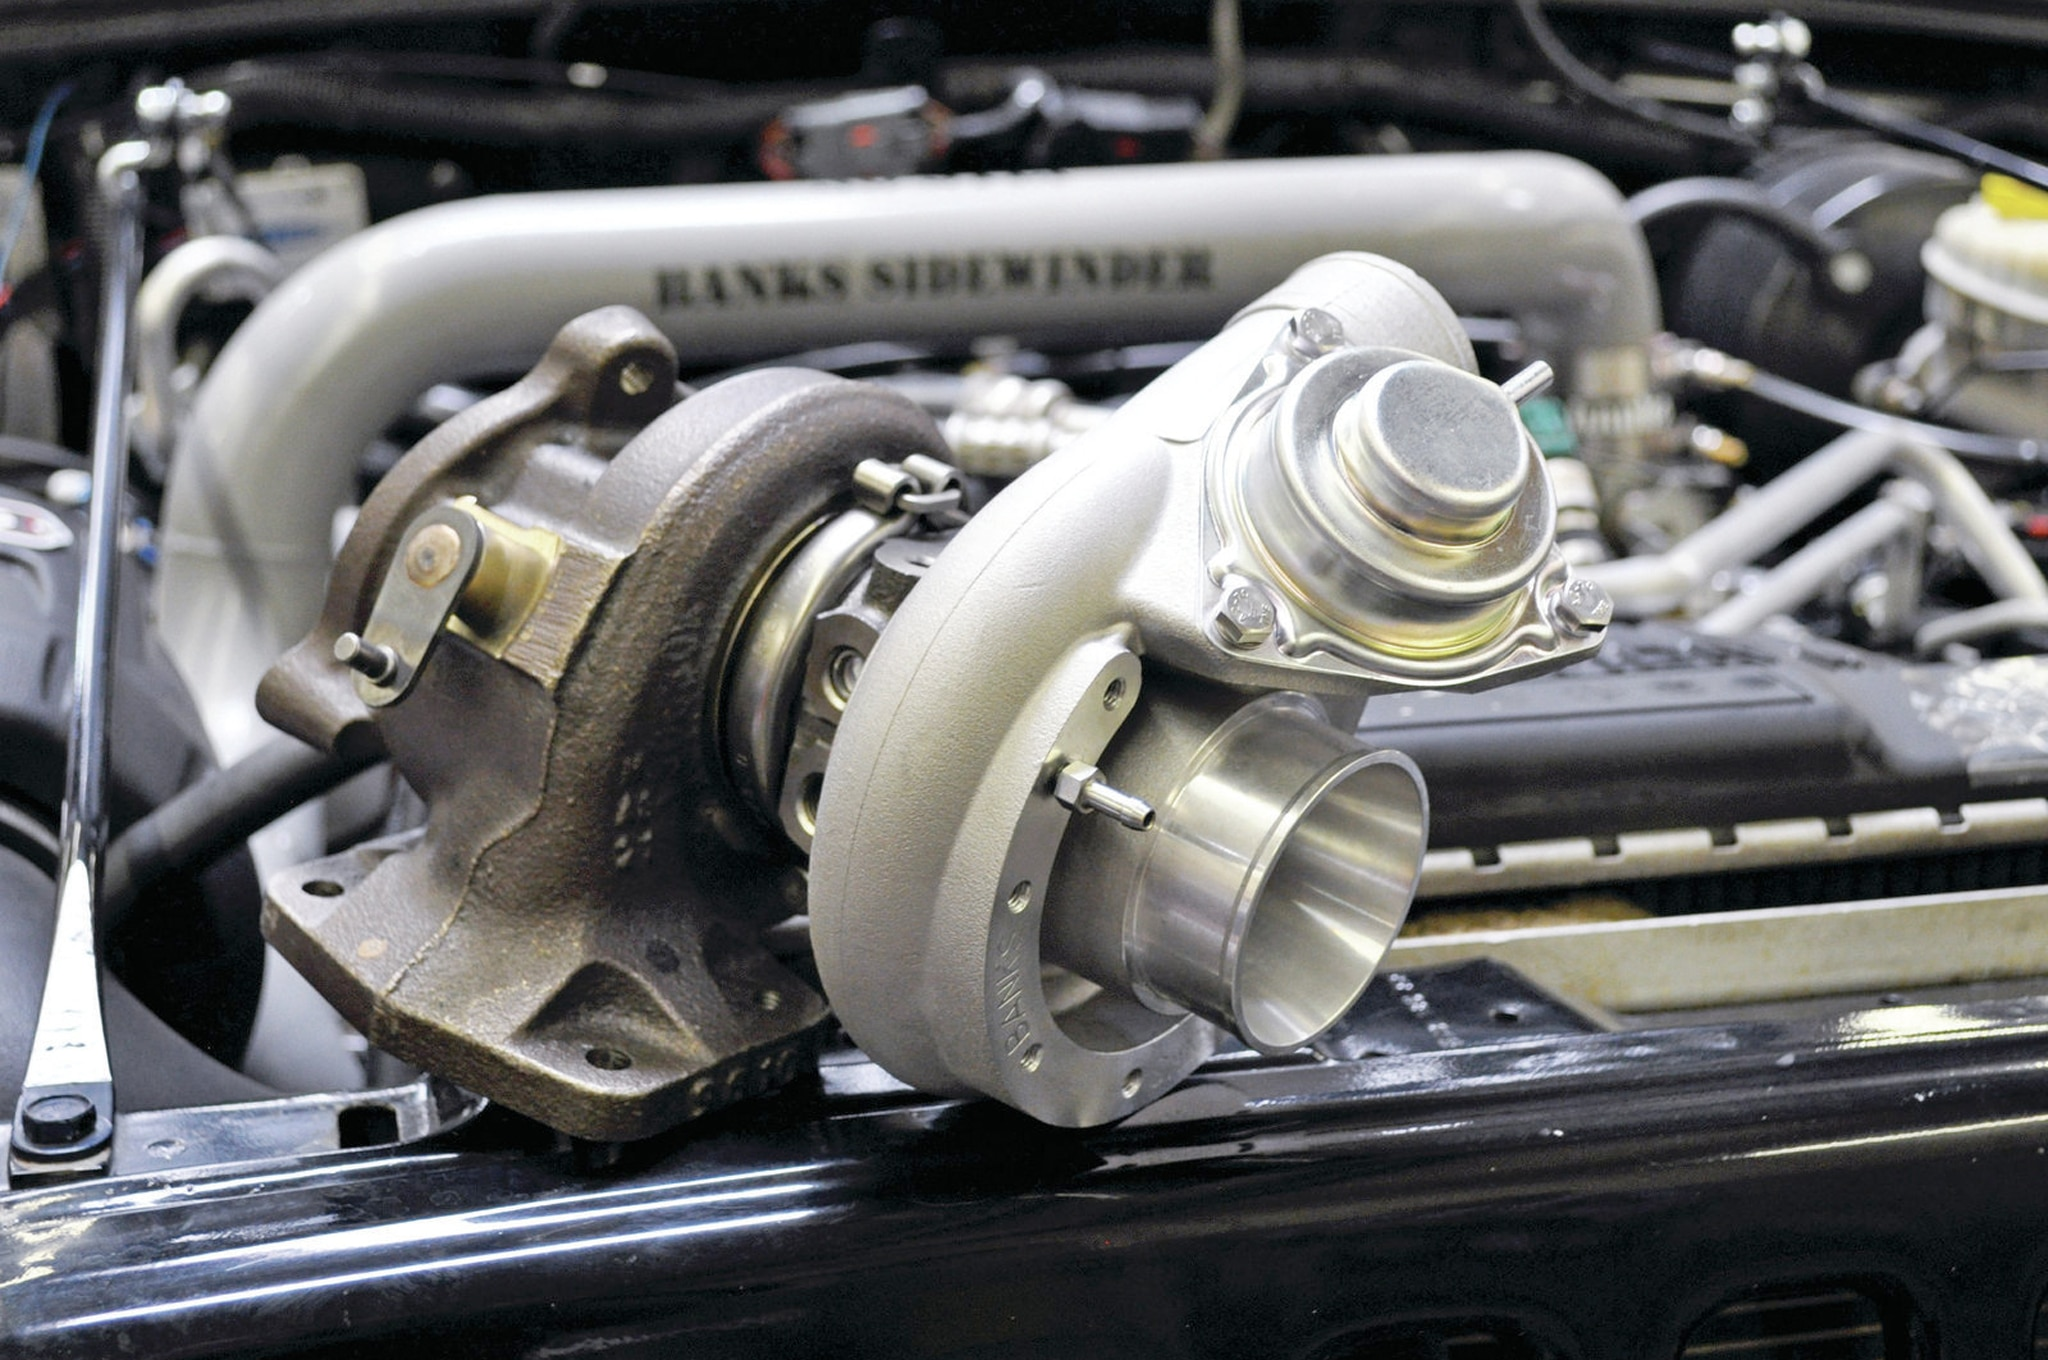 Jeep Wrangler Banks Sidewinder Turbo System Tech And How To